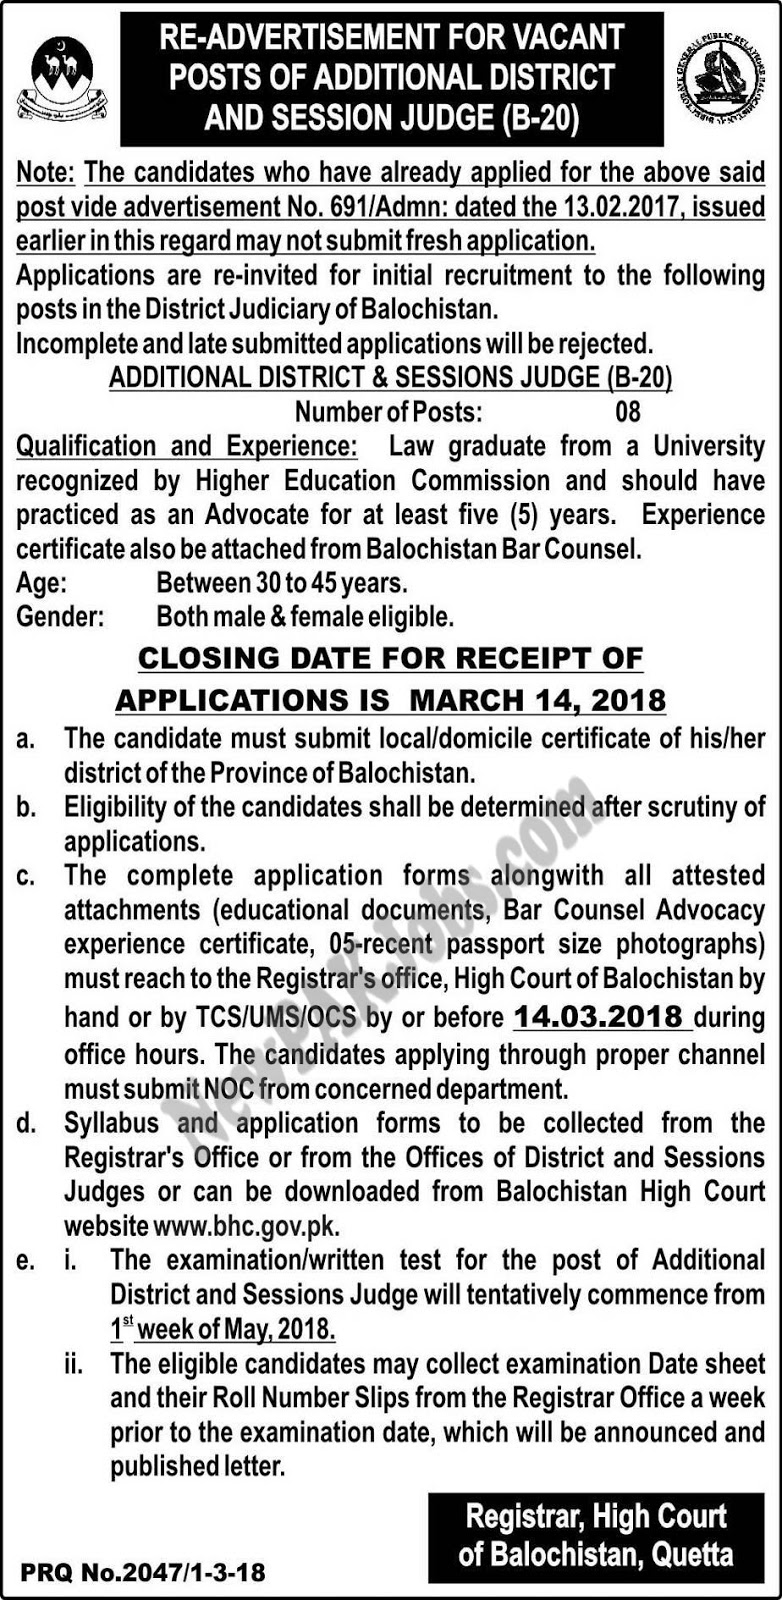 Re-Advertisement for Vacant Posts of Additional District and Session Judge